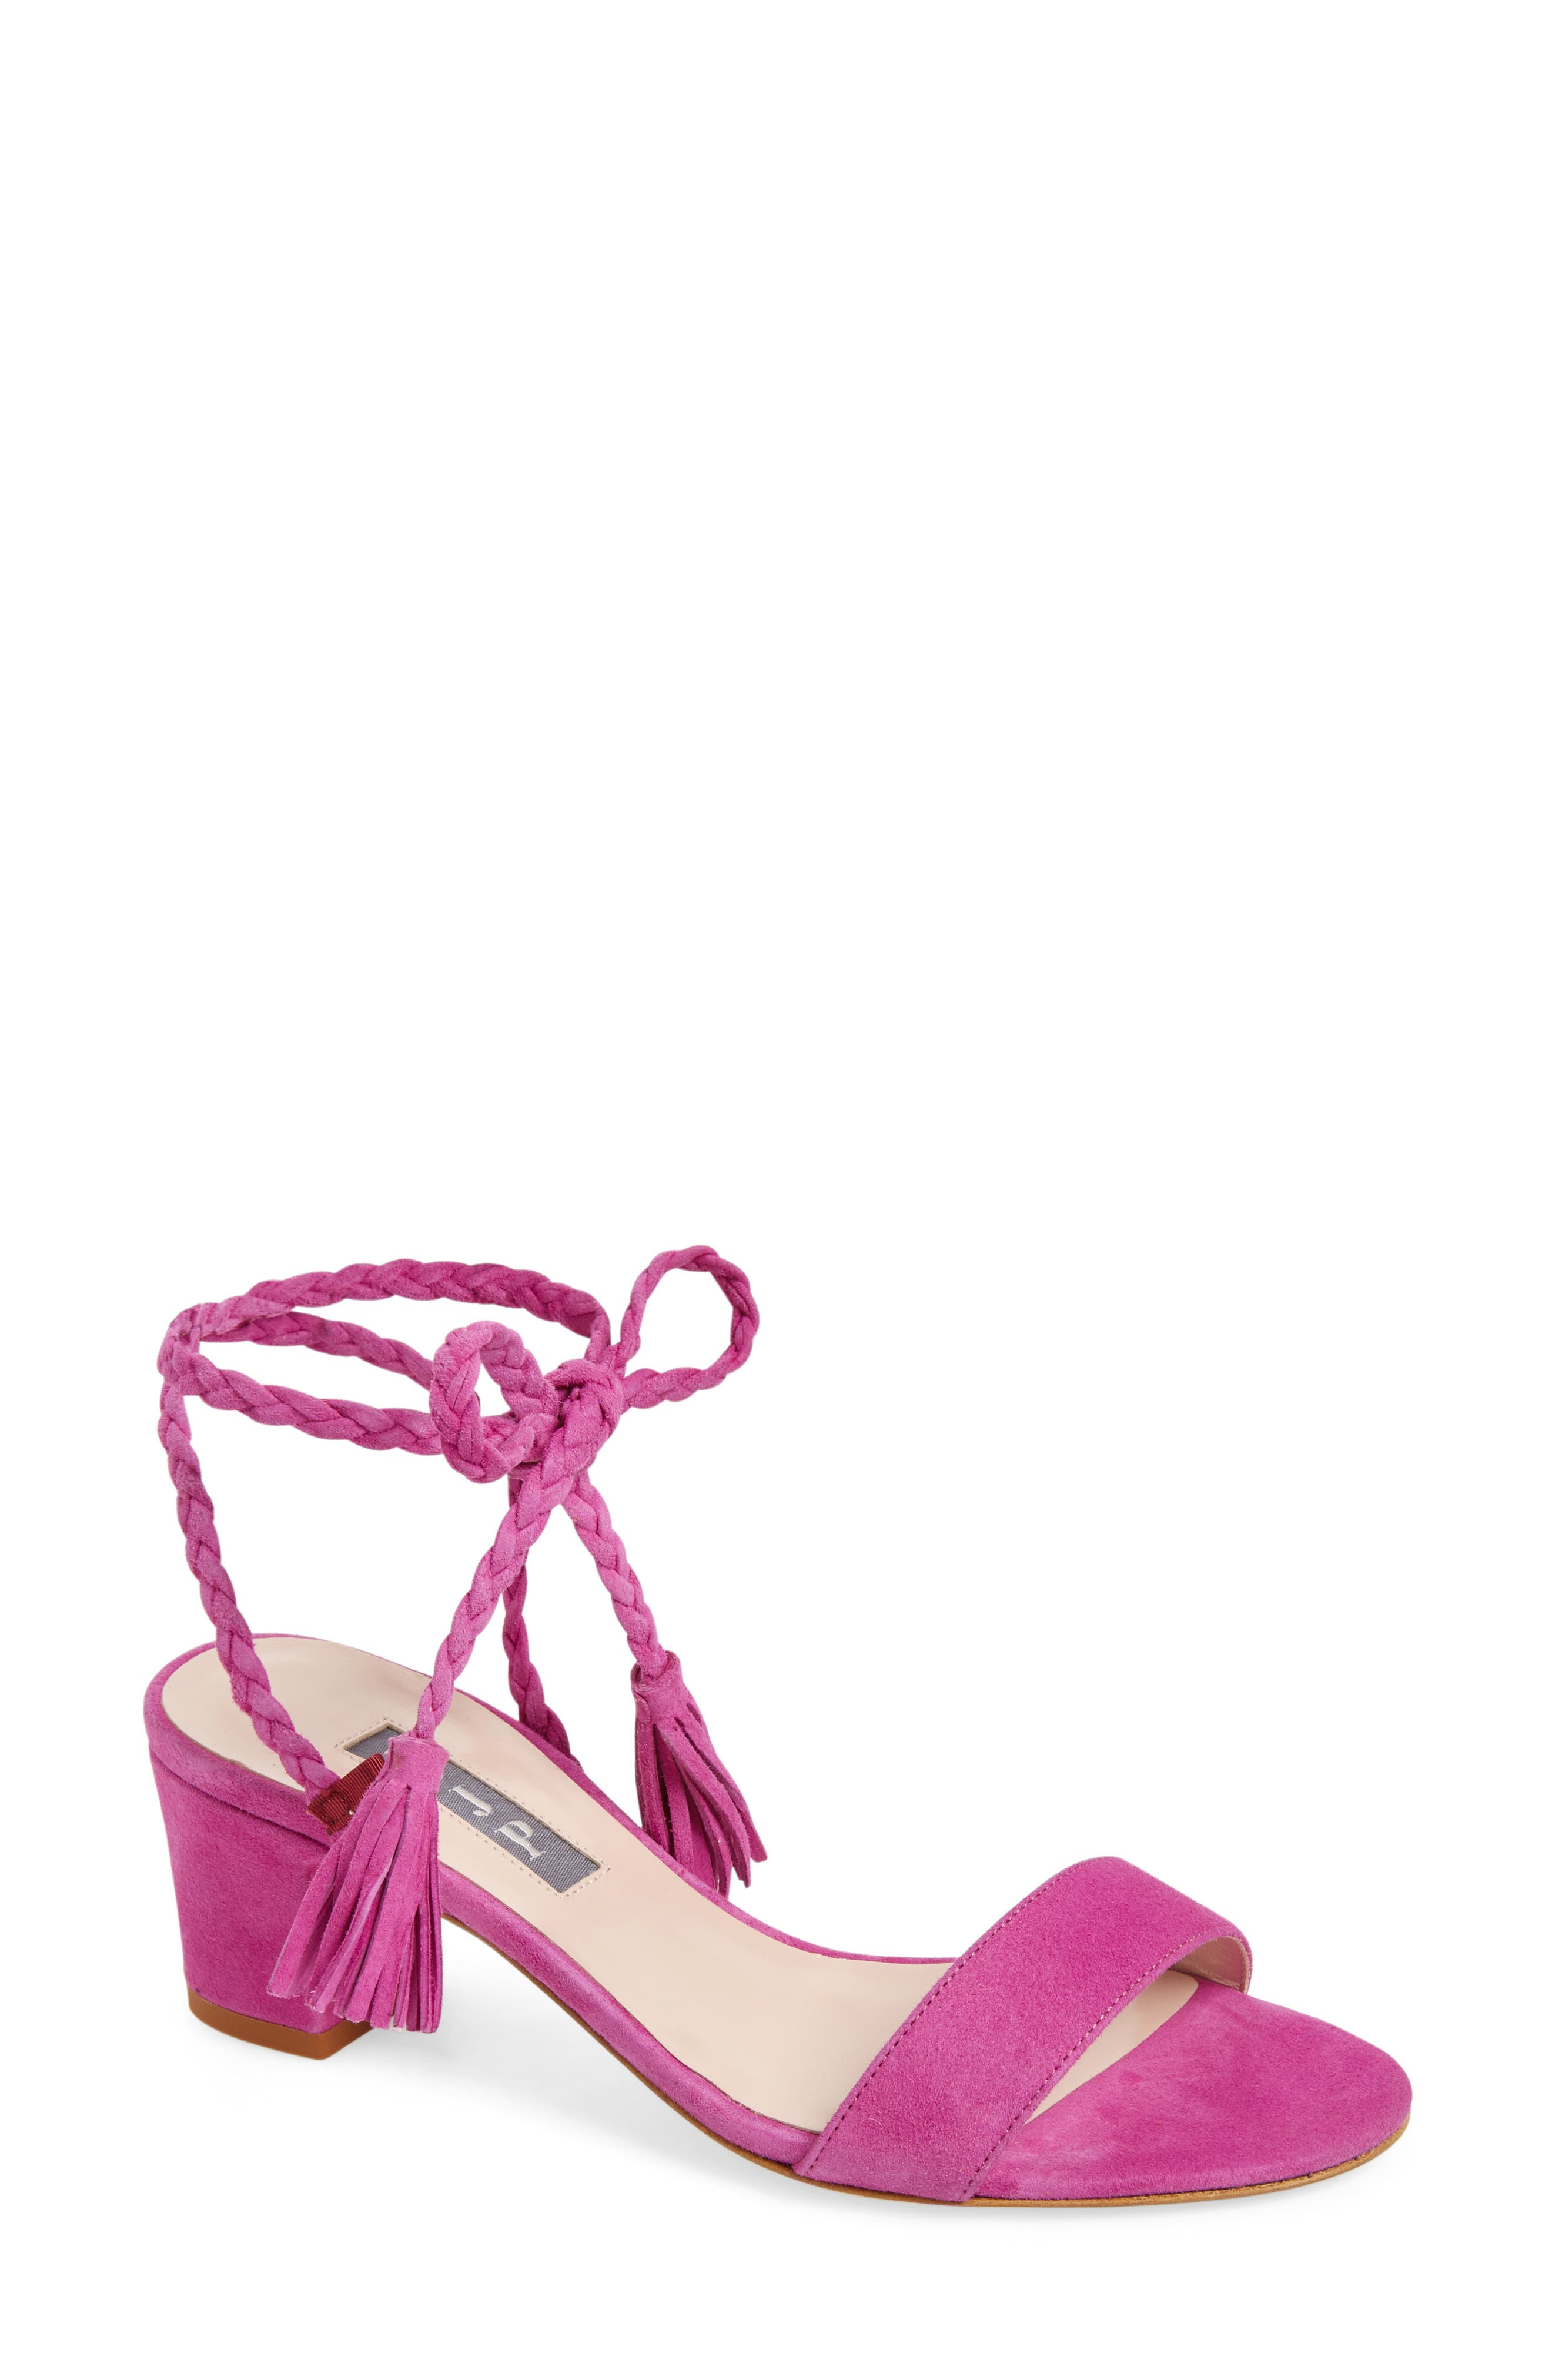 Alternate Image 1 Selected - SJP by Sarah Jessica Parker Elope Lace-Up Sandal (Women)